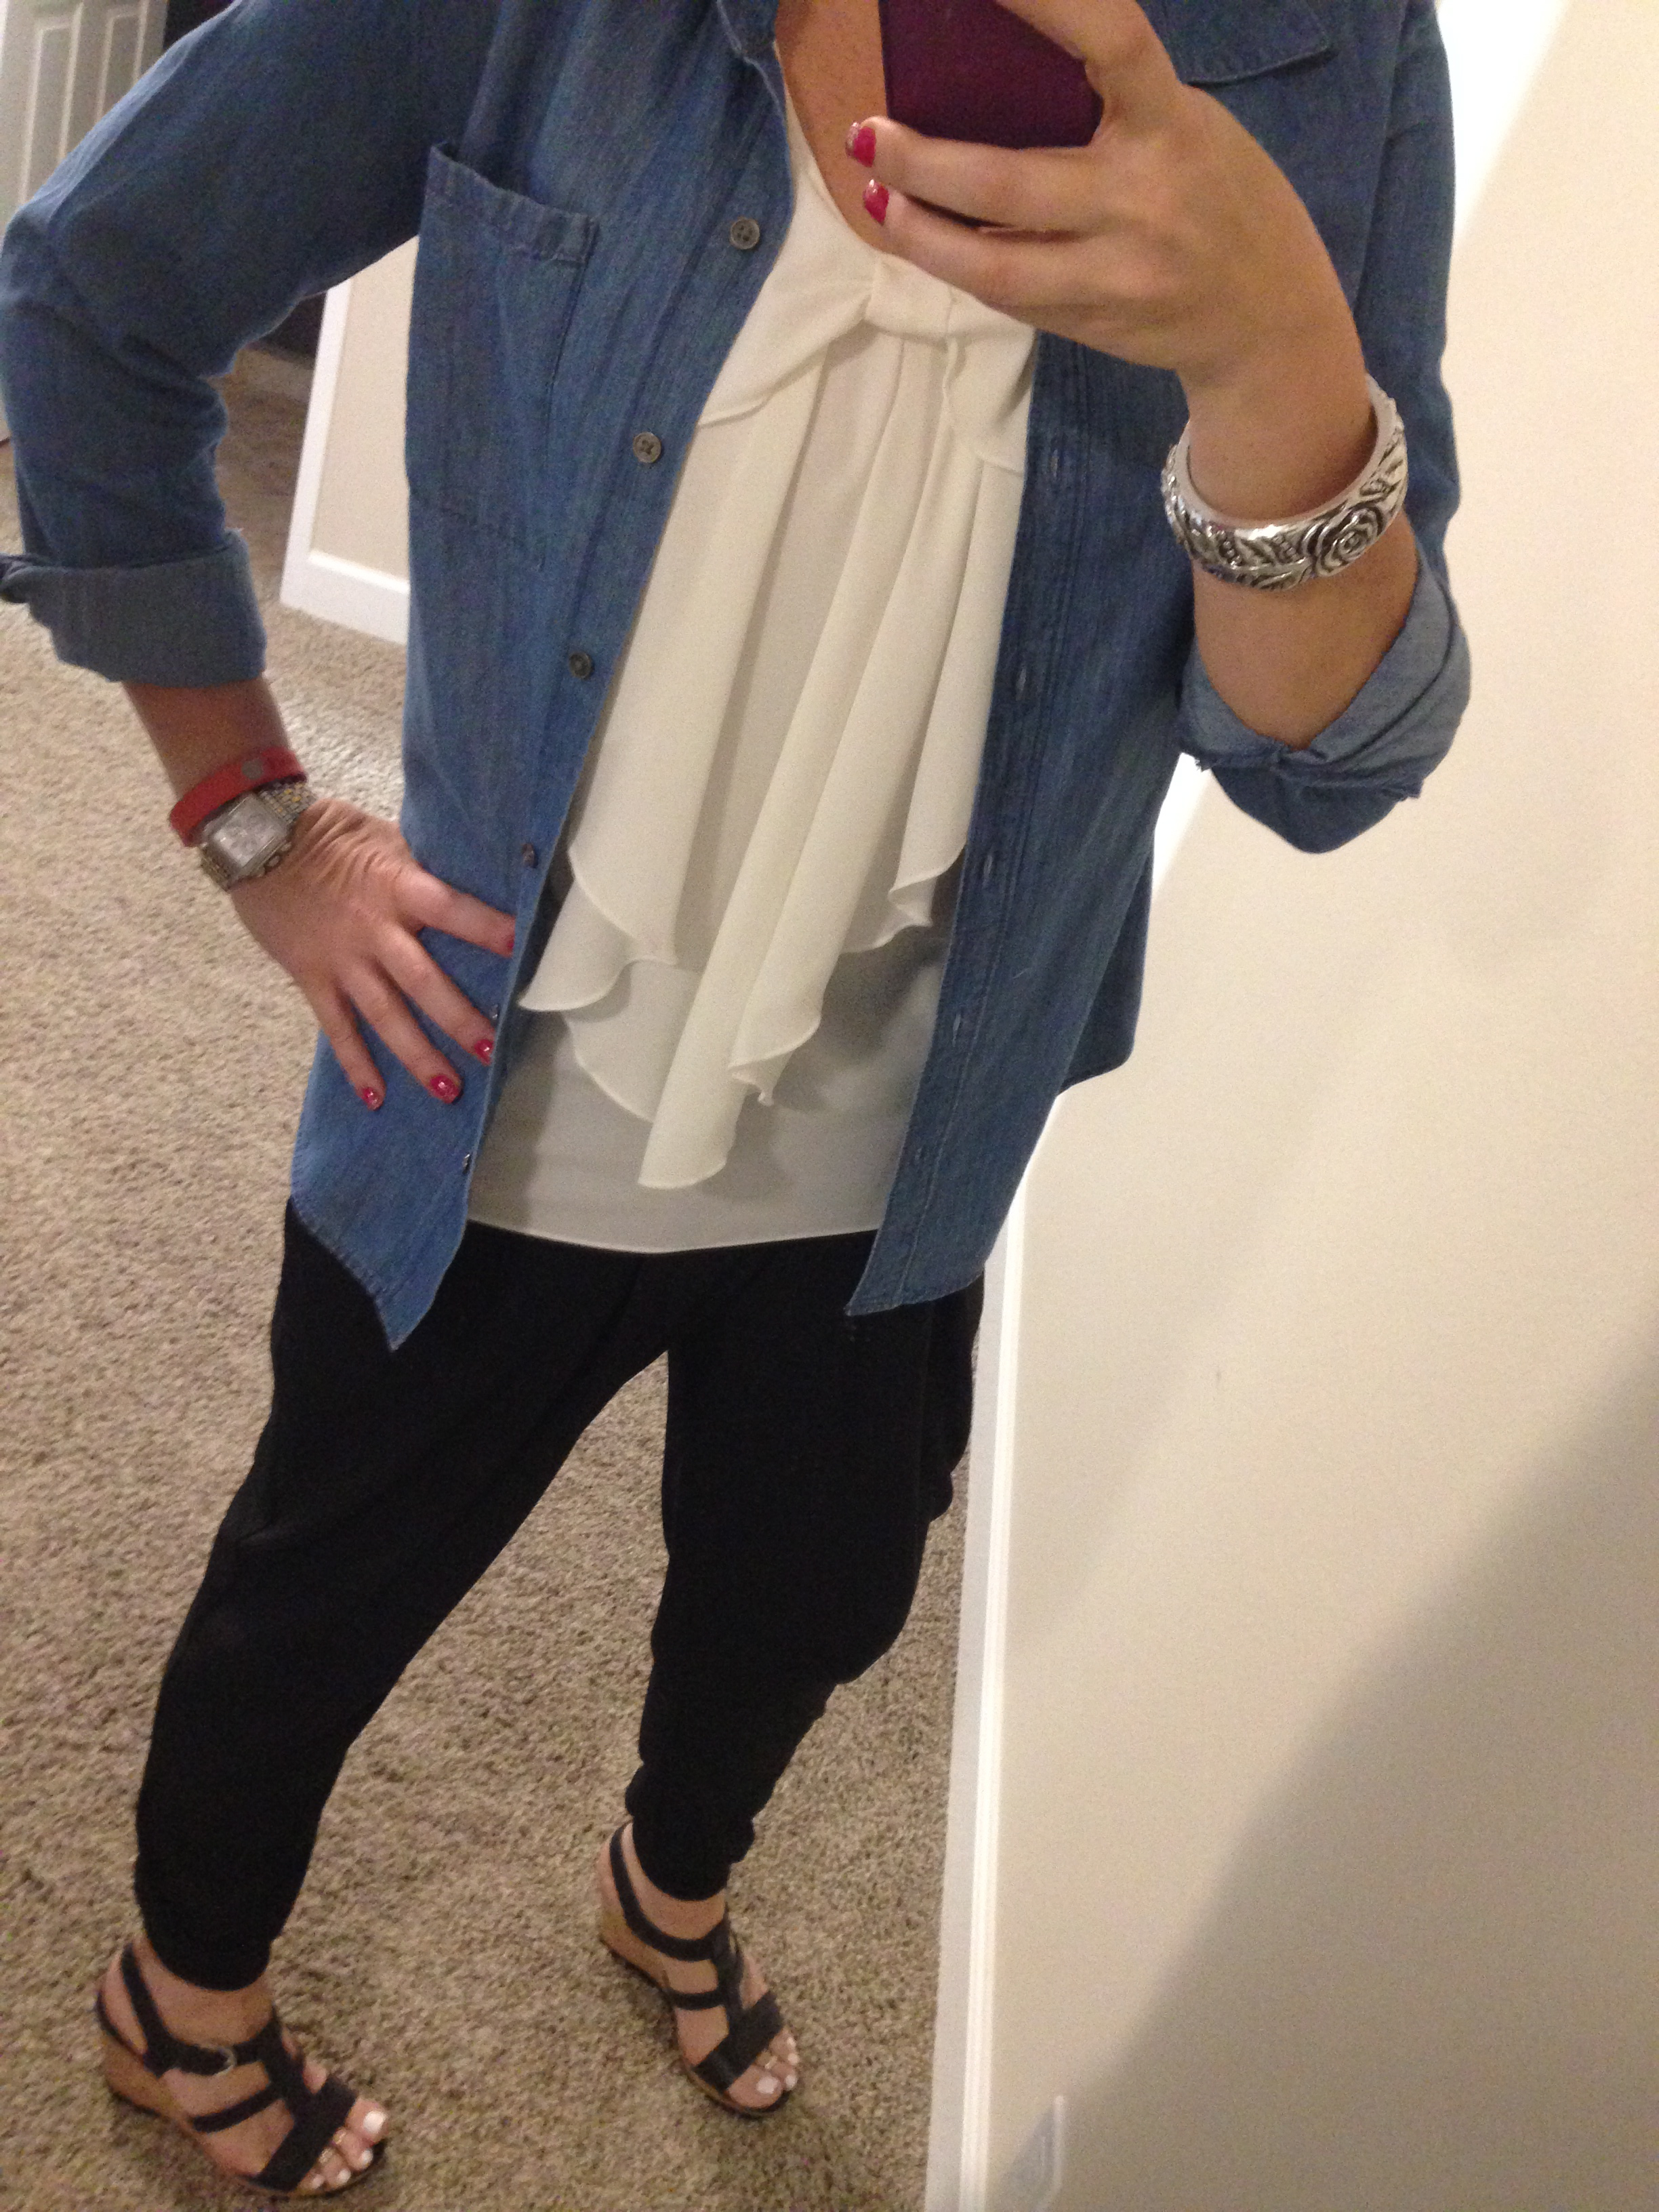 Denim Shirt: c/o Apt 9 for Kohls; Tank: c/o Apt 9 for Kohls; Harem Pants: Bobeau for Nordstrom; Sandals: Franco Sarto for Macy's; Bracelet: old--Similar; Watch: Michele; Tracker: Fitbit